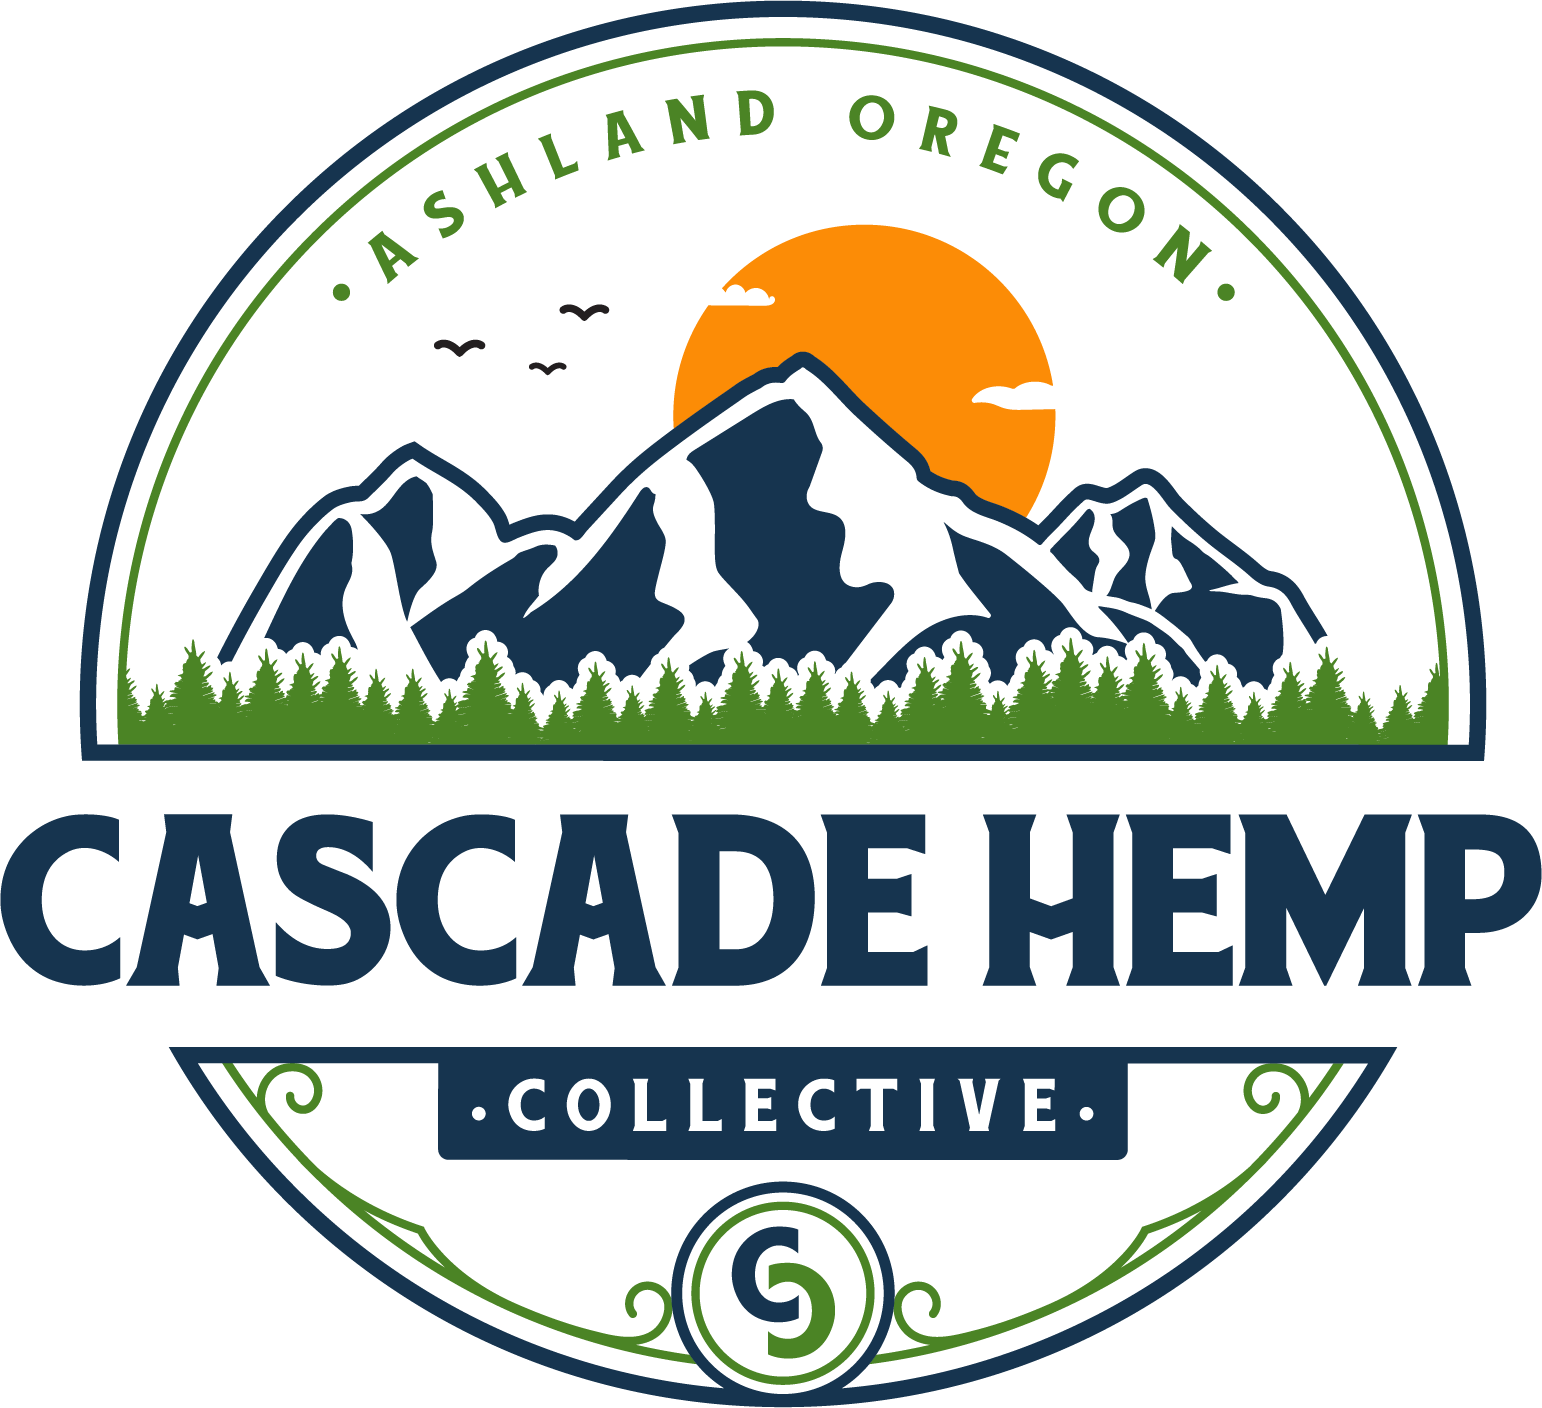 Cascade Hemp Collective